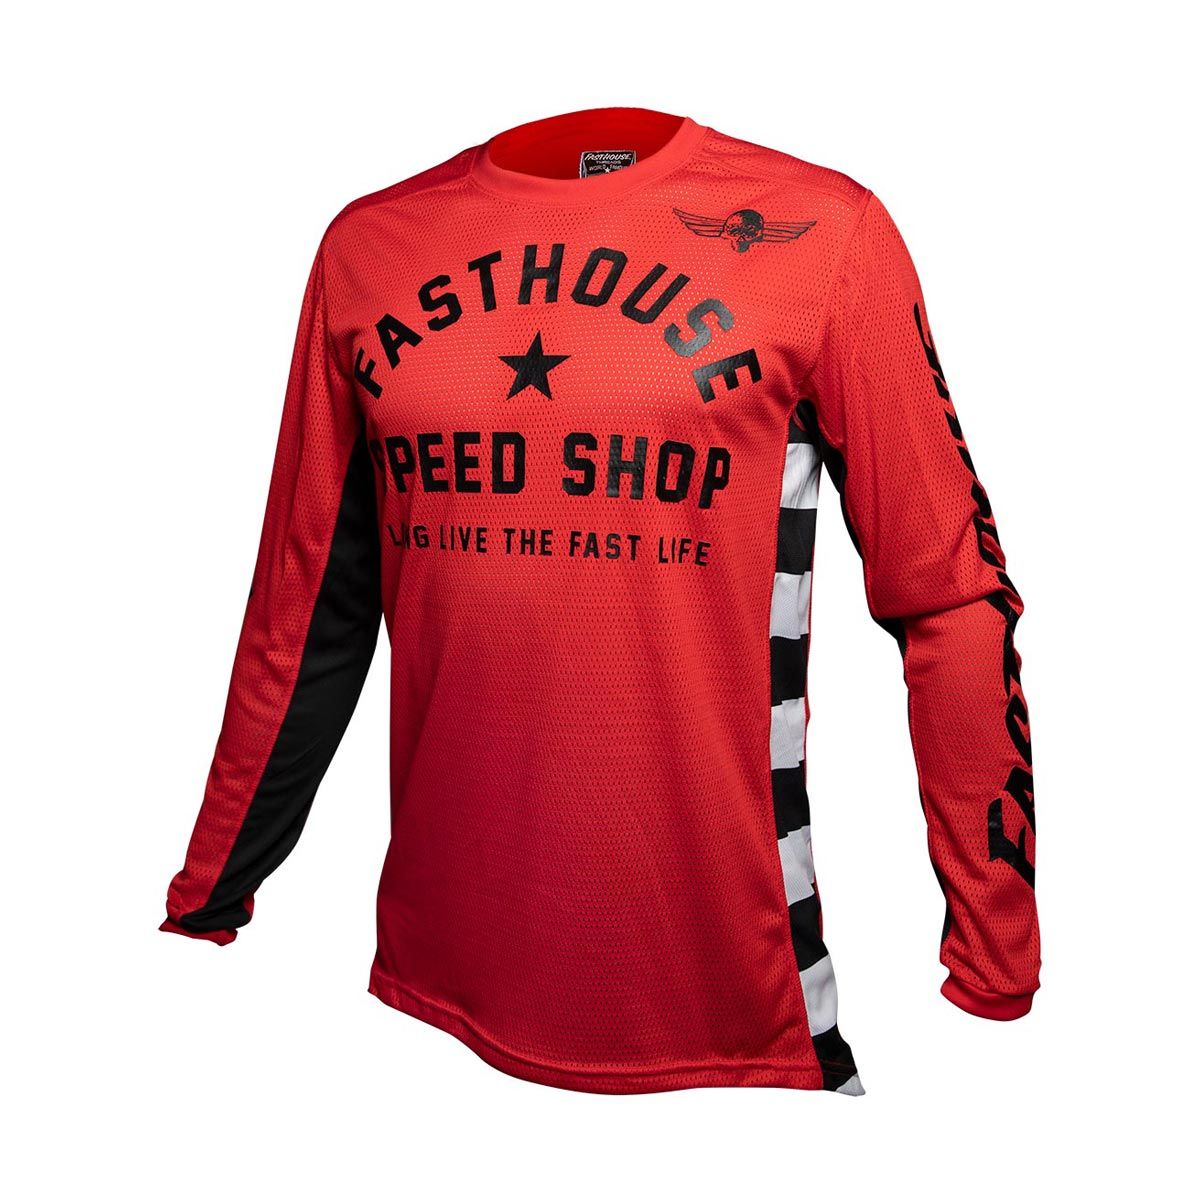 Fasthouse - Originals Air Cooled L1 Youth Jersey - Red